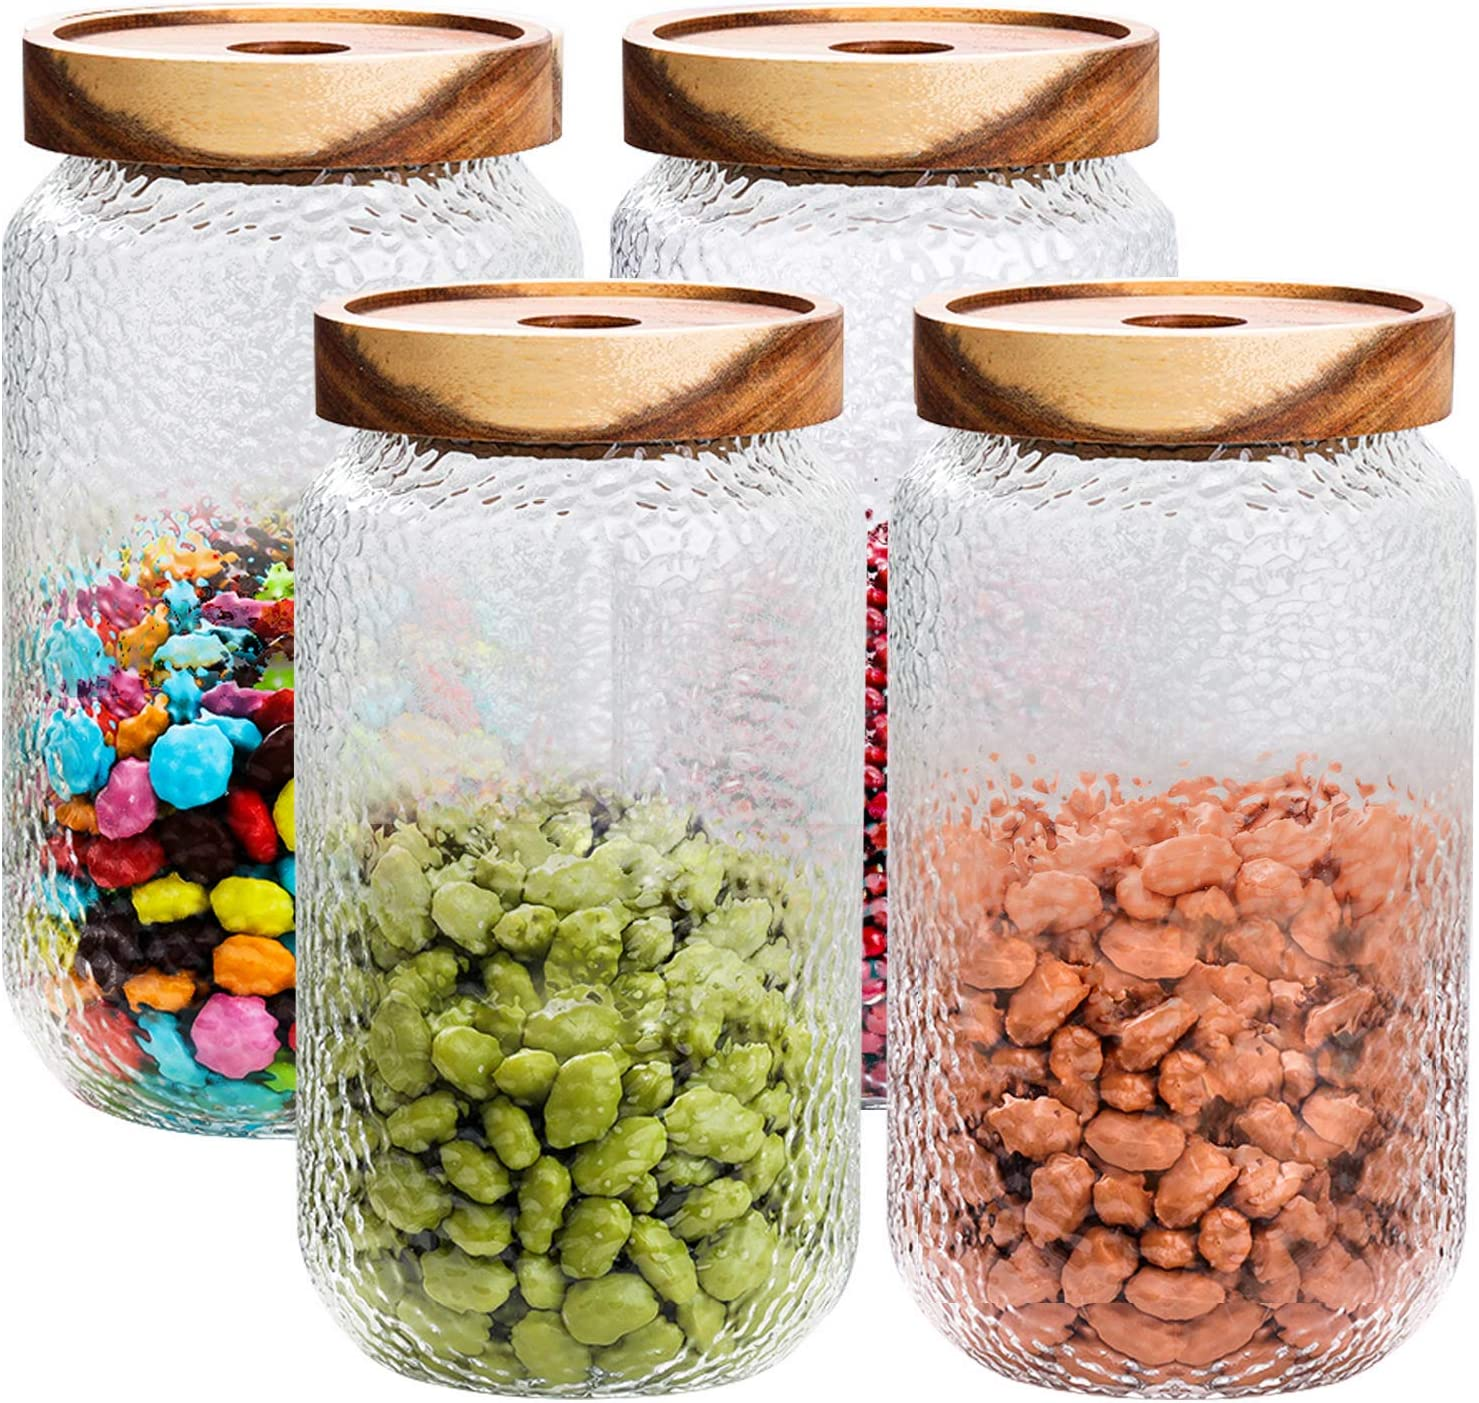 SMARTAKE Glass Jar Sets, 4 Packs of 29oz Wide Mouth Food Storage Jars Containers with Airtight Wood Lid, Reusable Food Storage Canister for Food, Coffee Bean, Flour, Candy, Snacks, Nuts